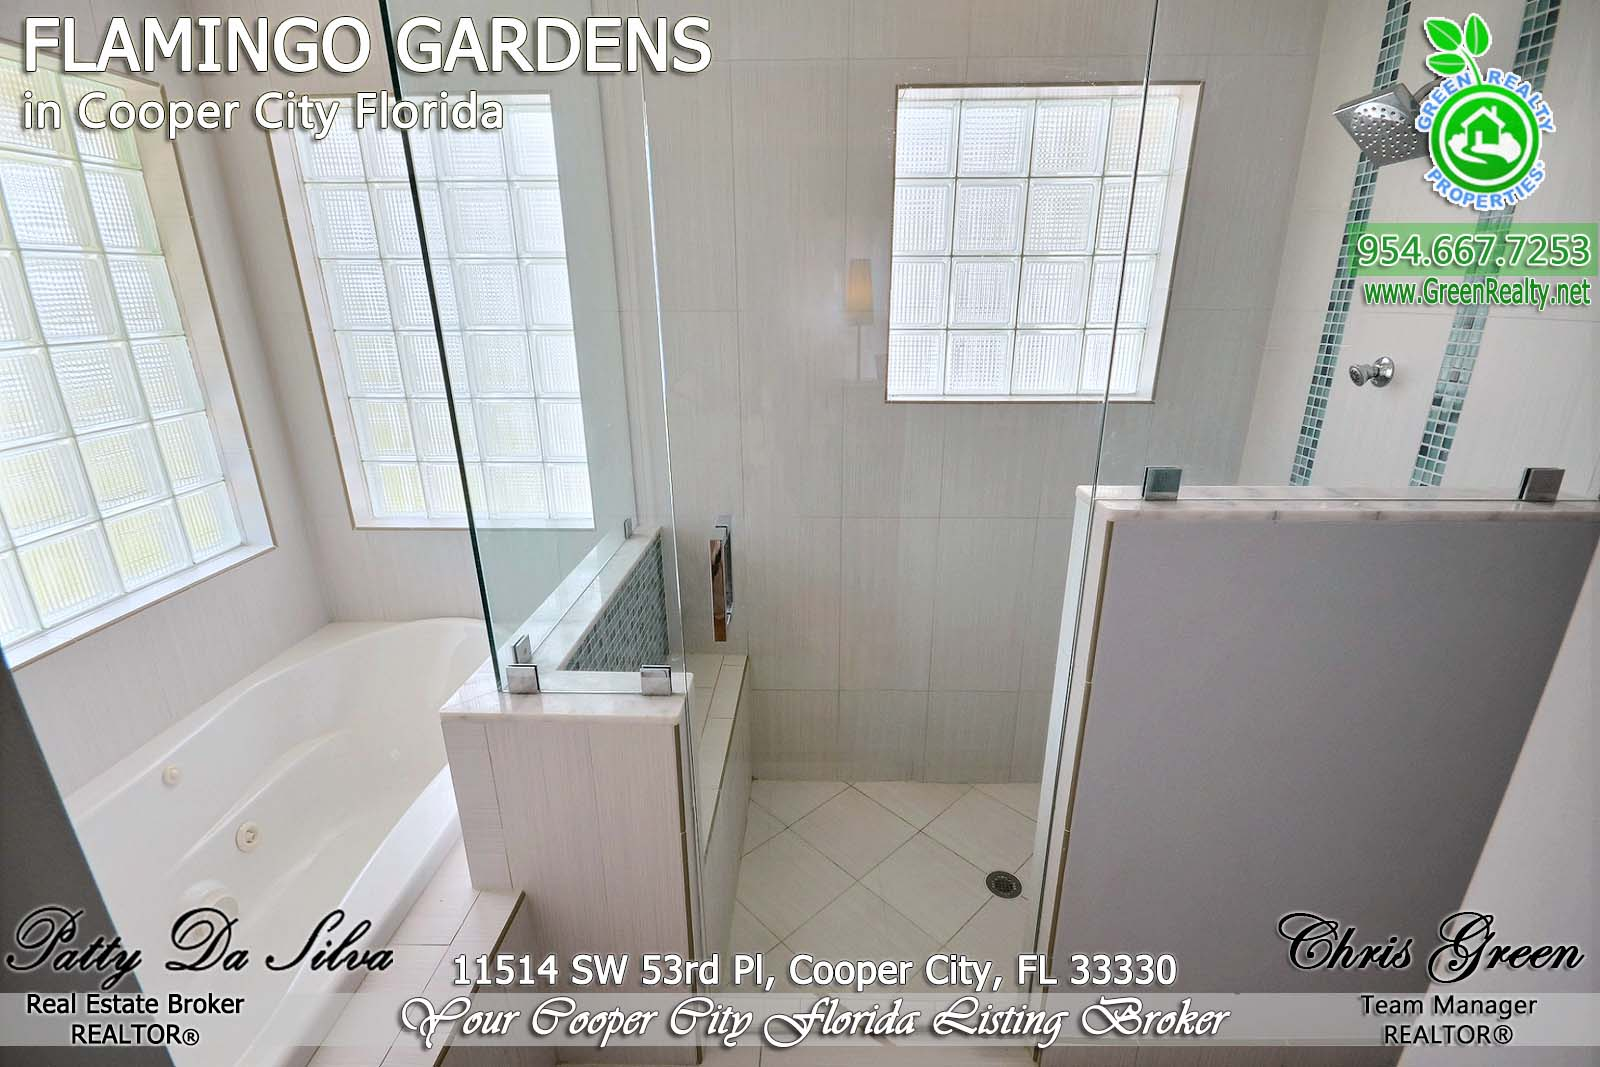 30 Flamingo Gardens Cooper City Homes For Sale (27)